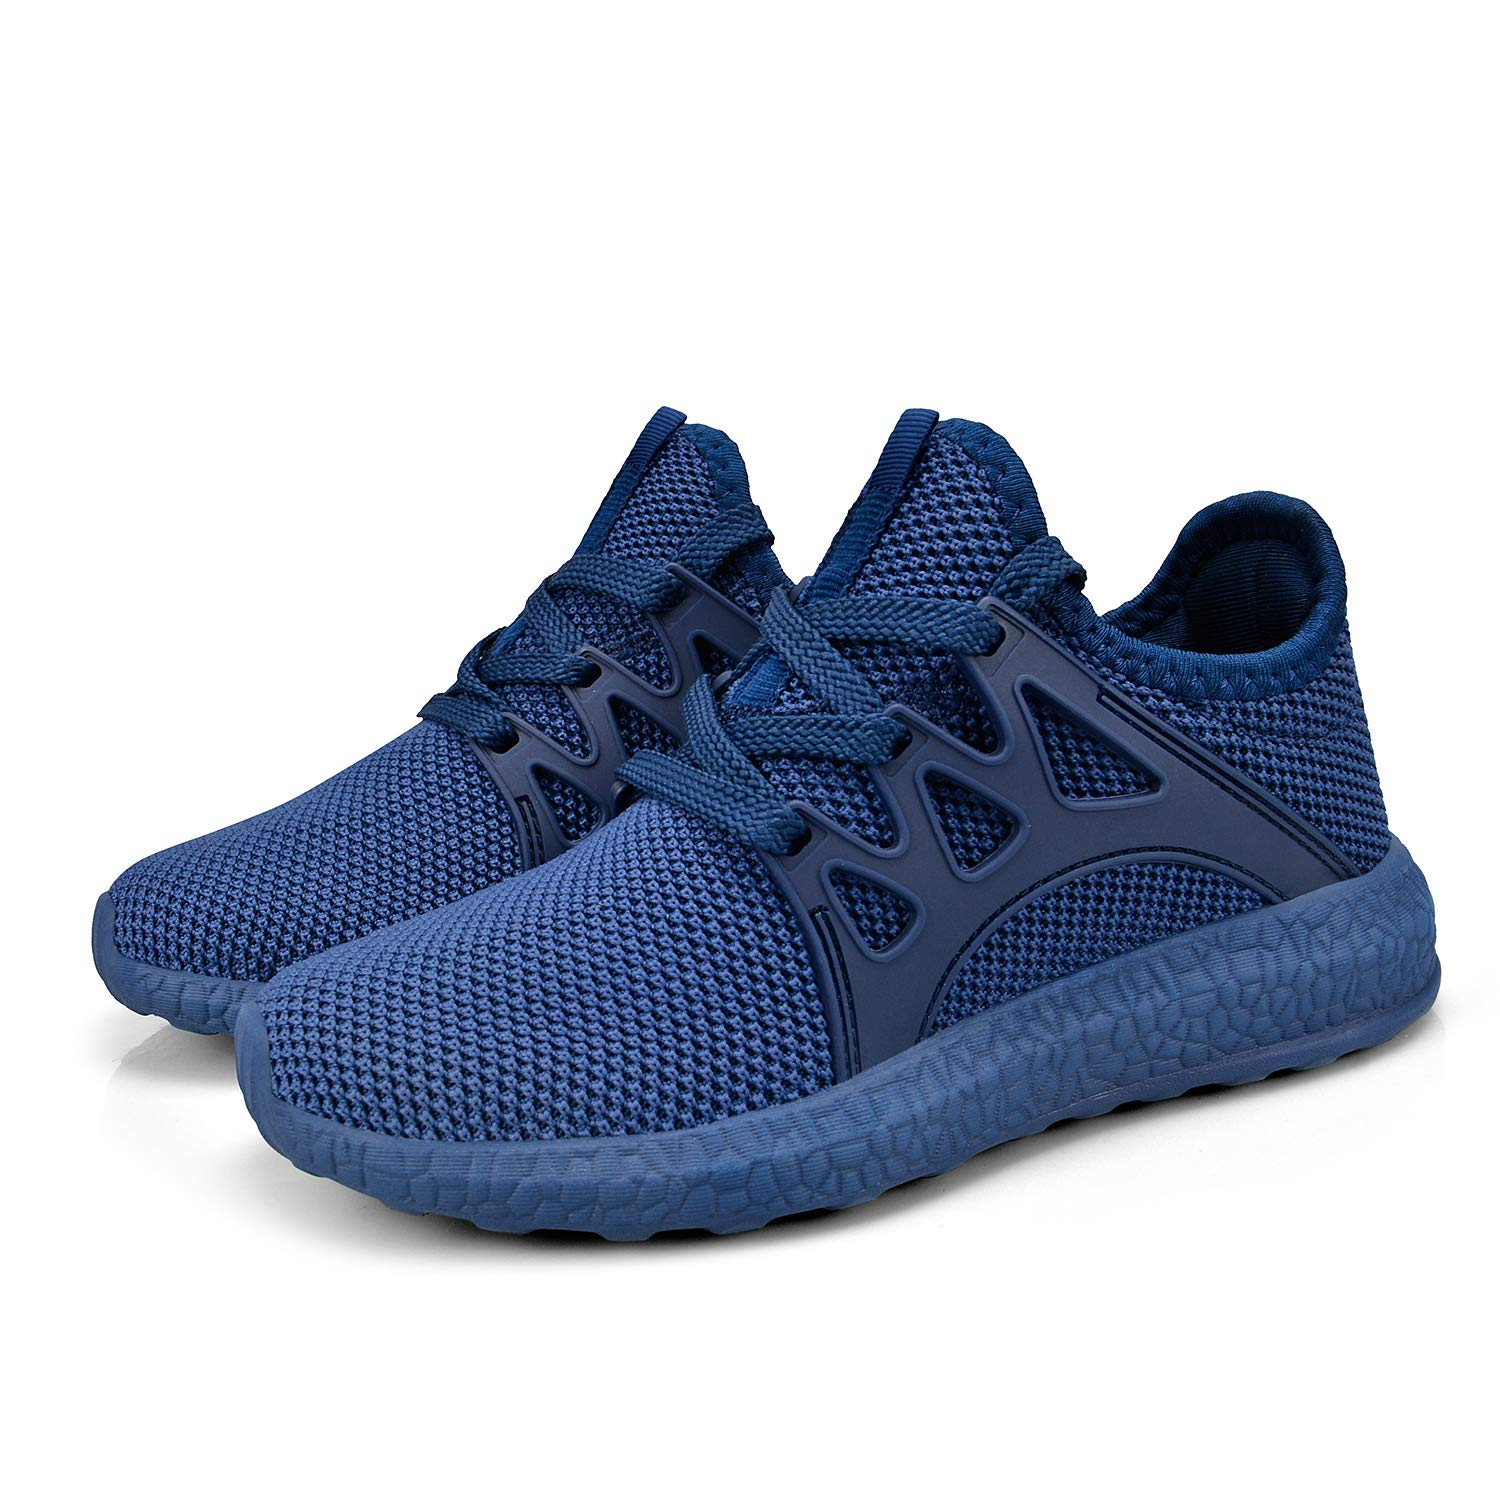 Biacolum Boys Running Shoes Mesh Breathable Athletic Sneaker Tennis Shoes for Little Kids